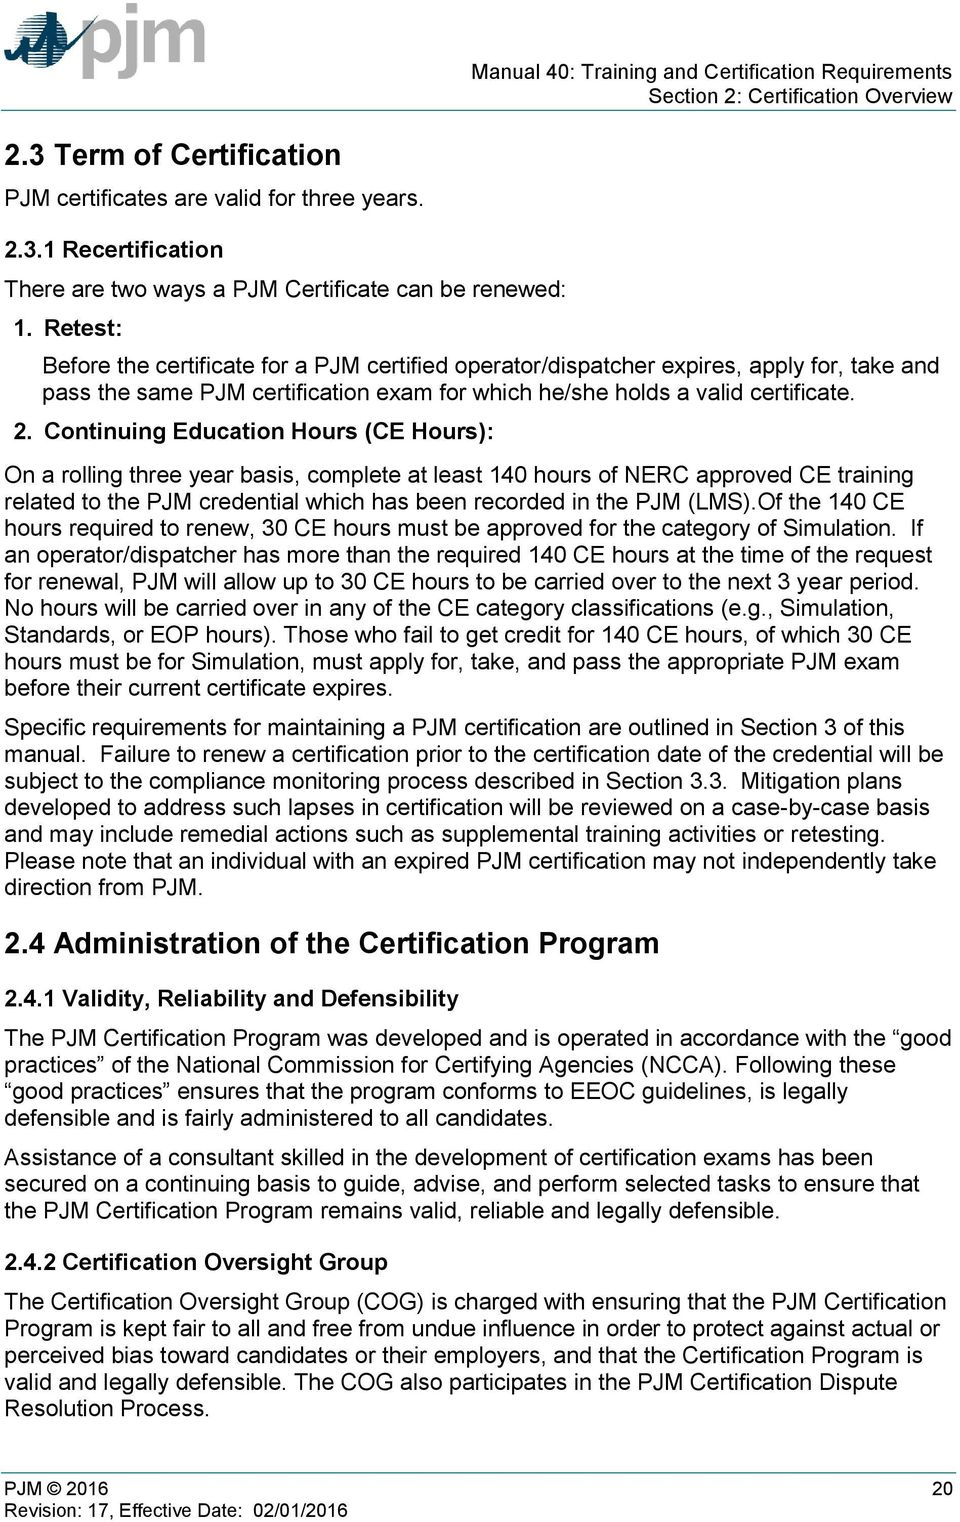 Training and Certification Requirements - PDF